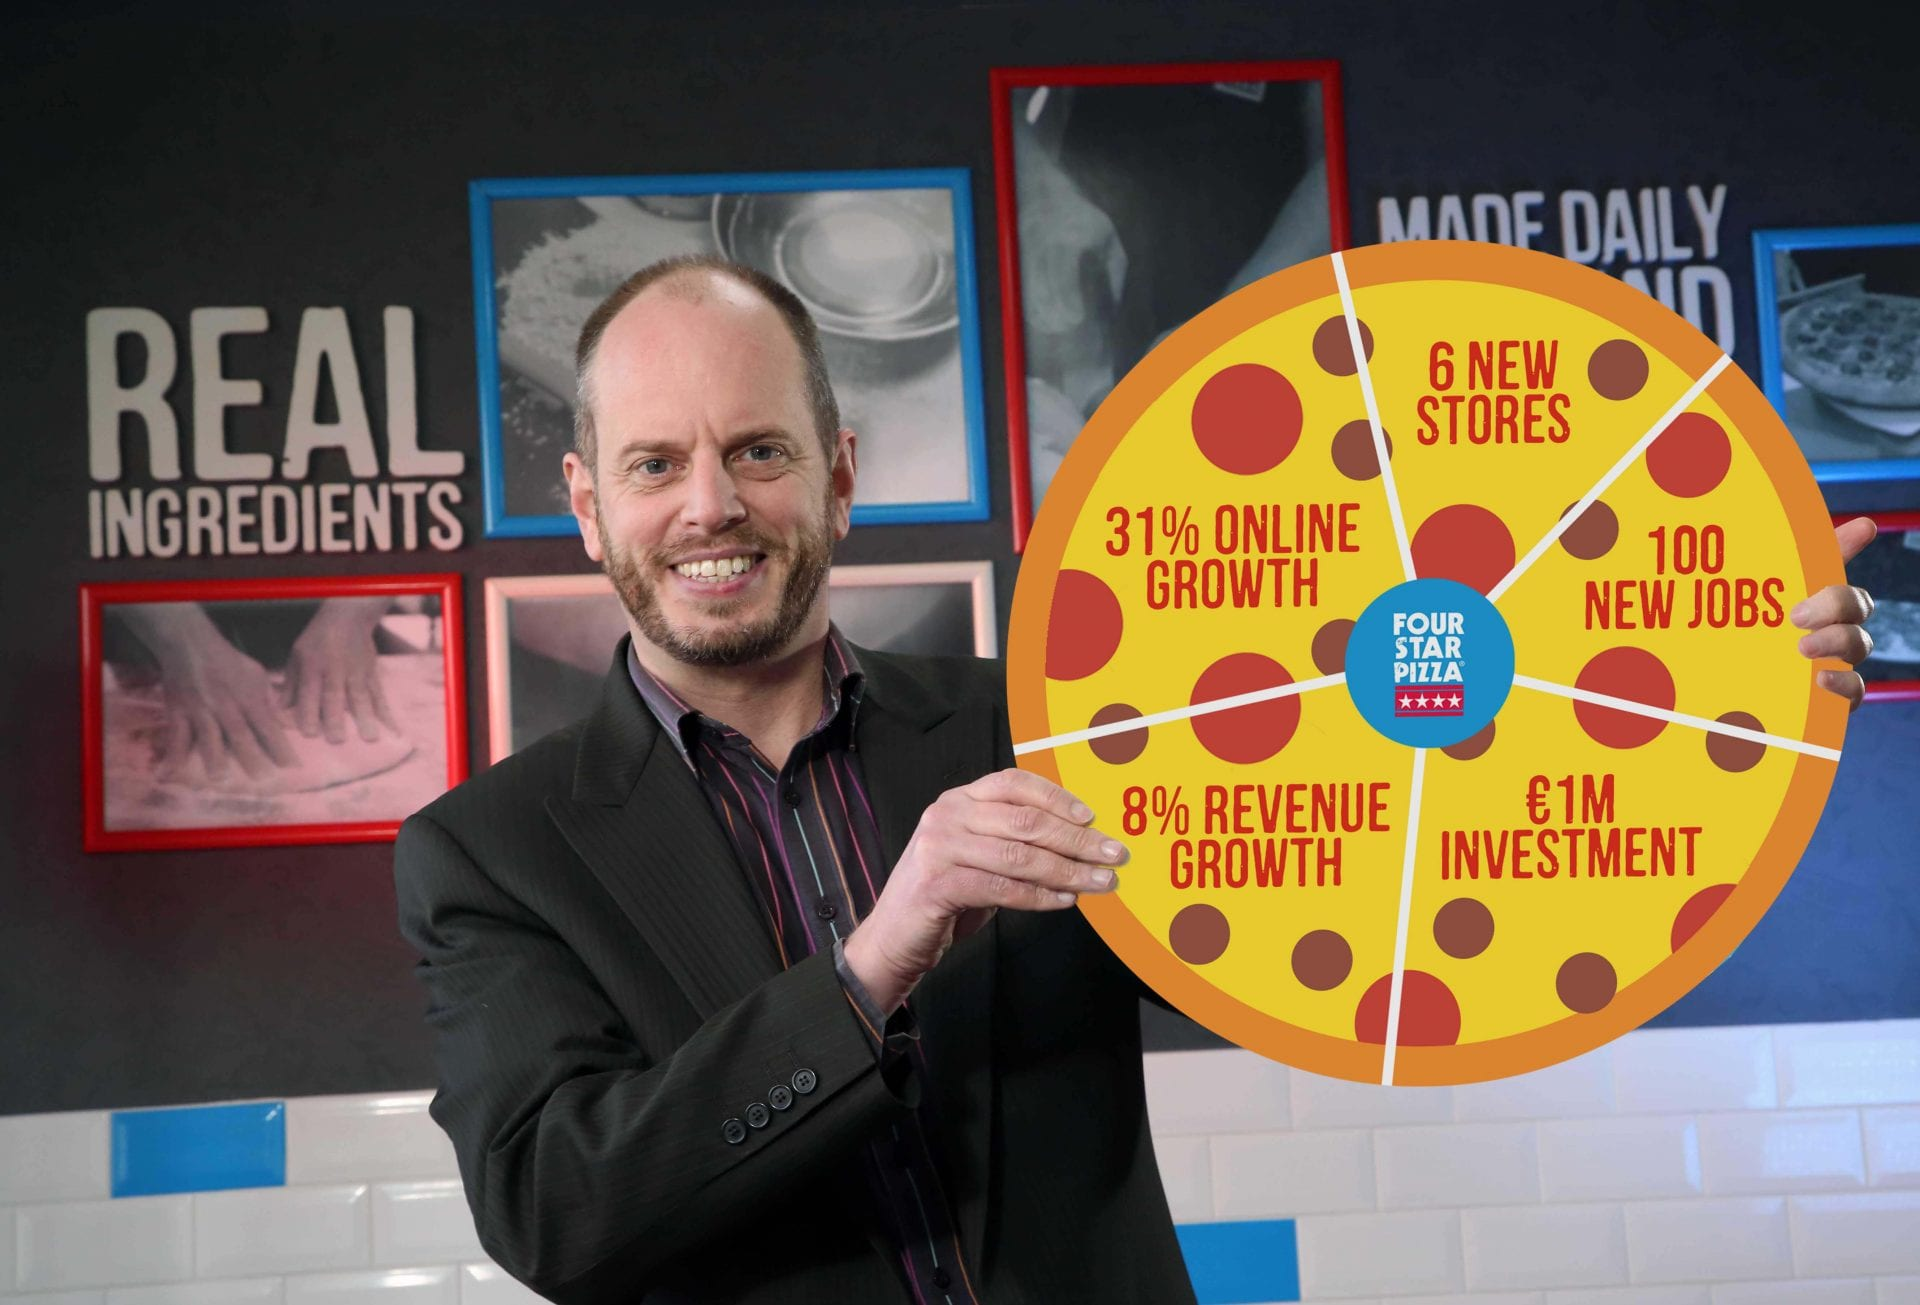 Four Star Pizza Delivers Record Results In 2018 Businessfirst